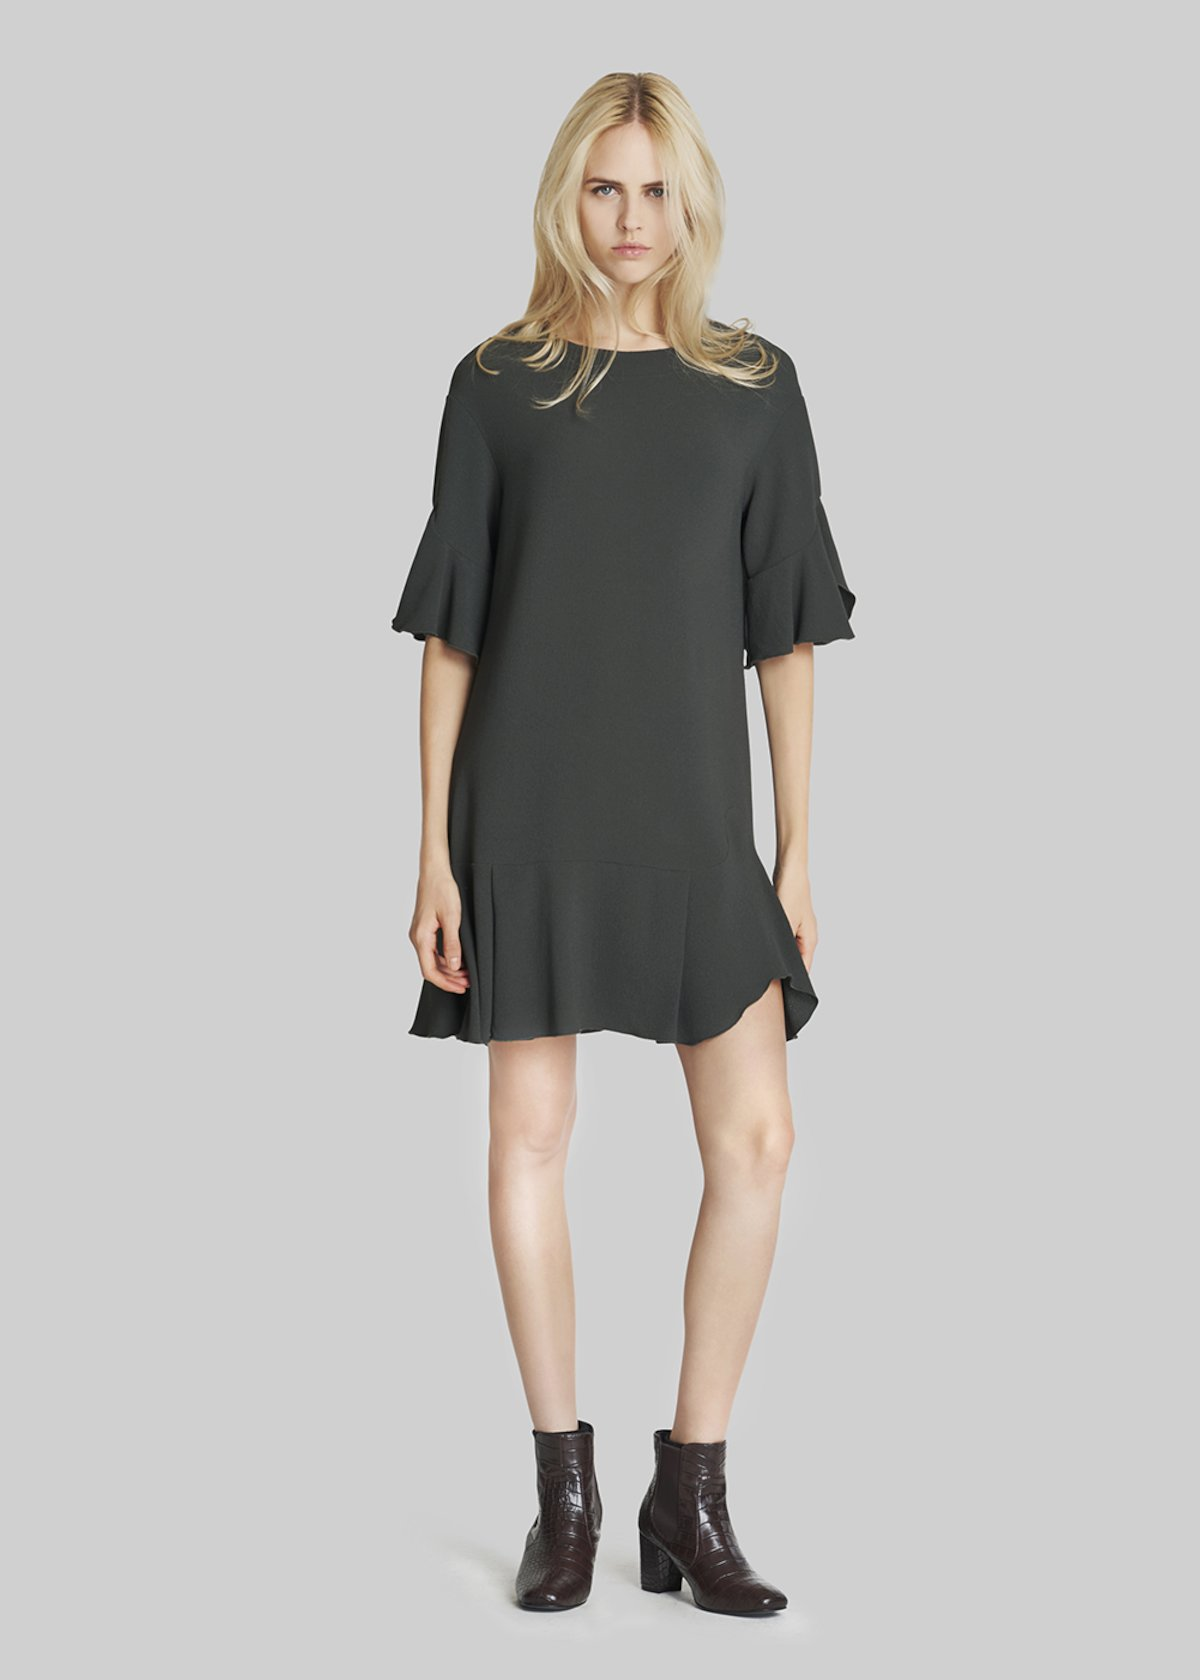 Ashley dress with frill detail